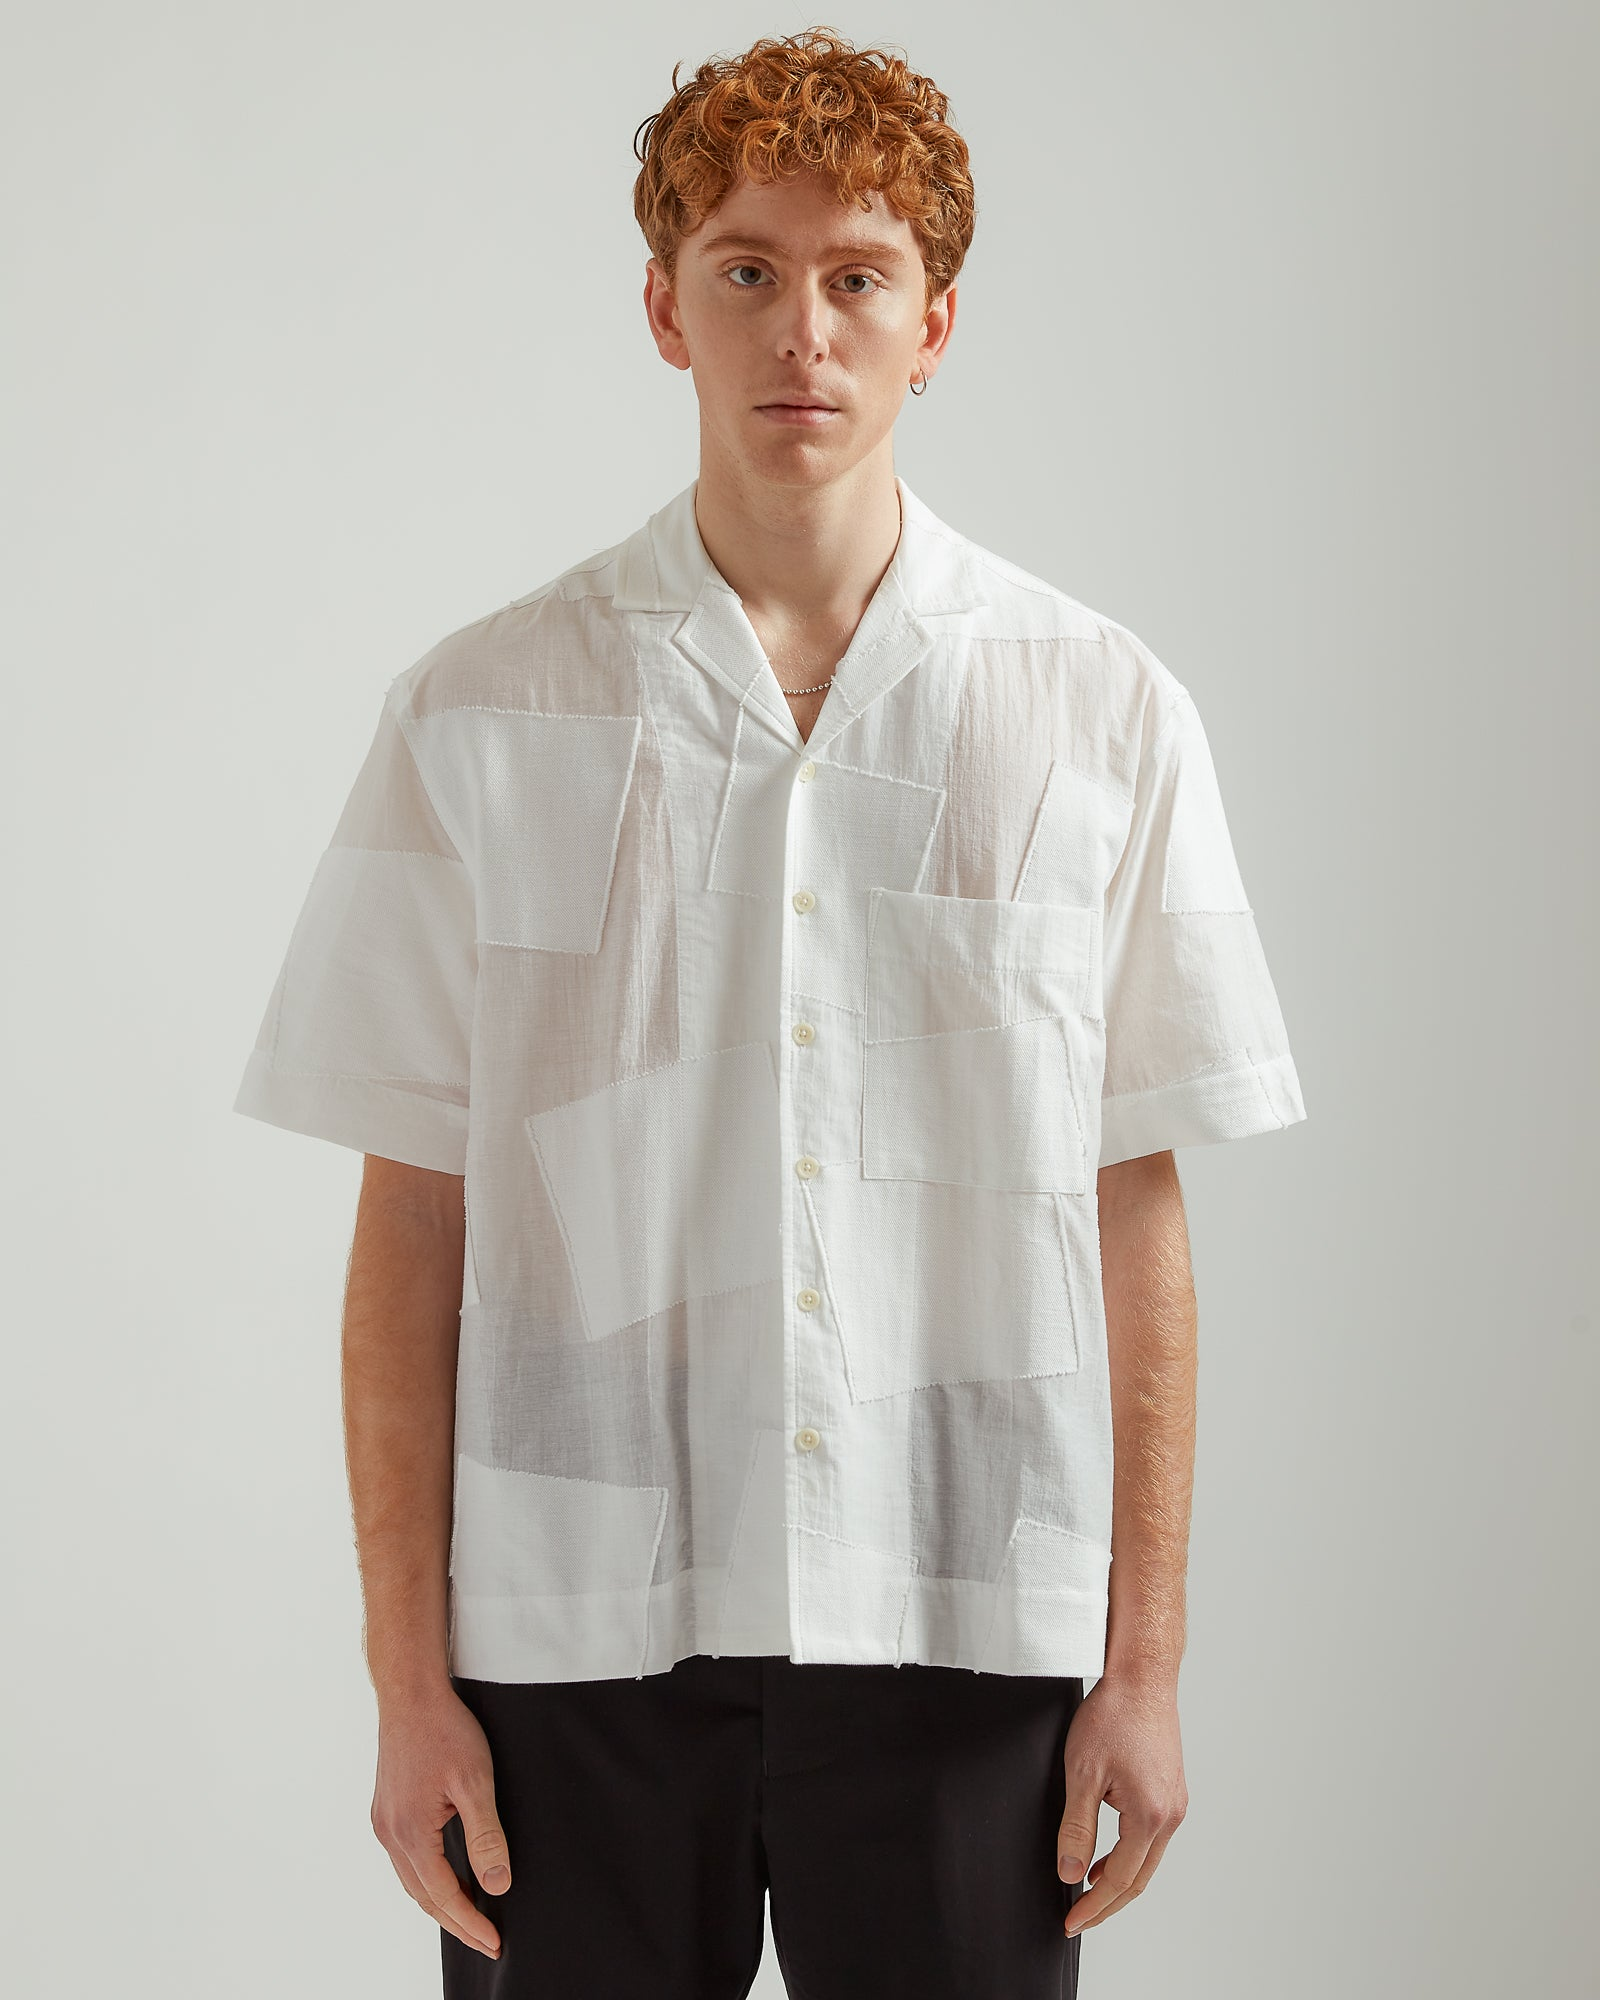 S/S Box Shirt in White